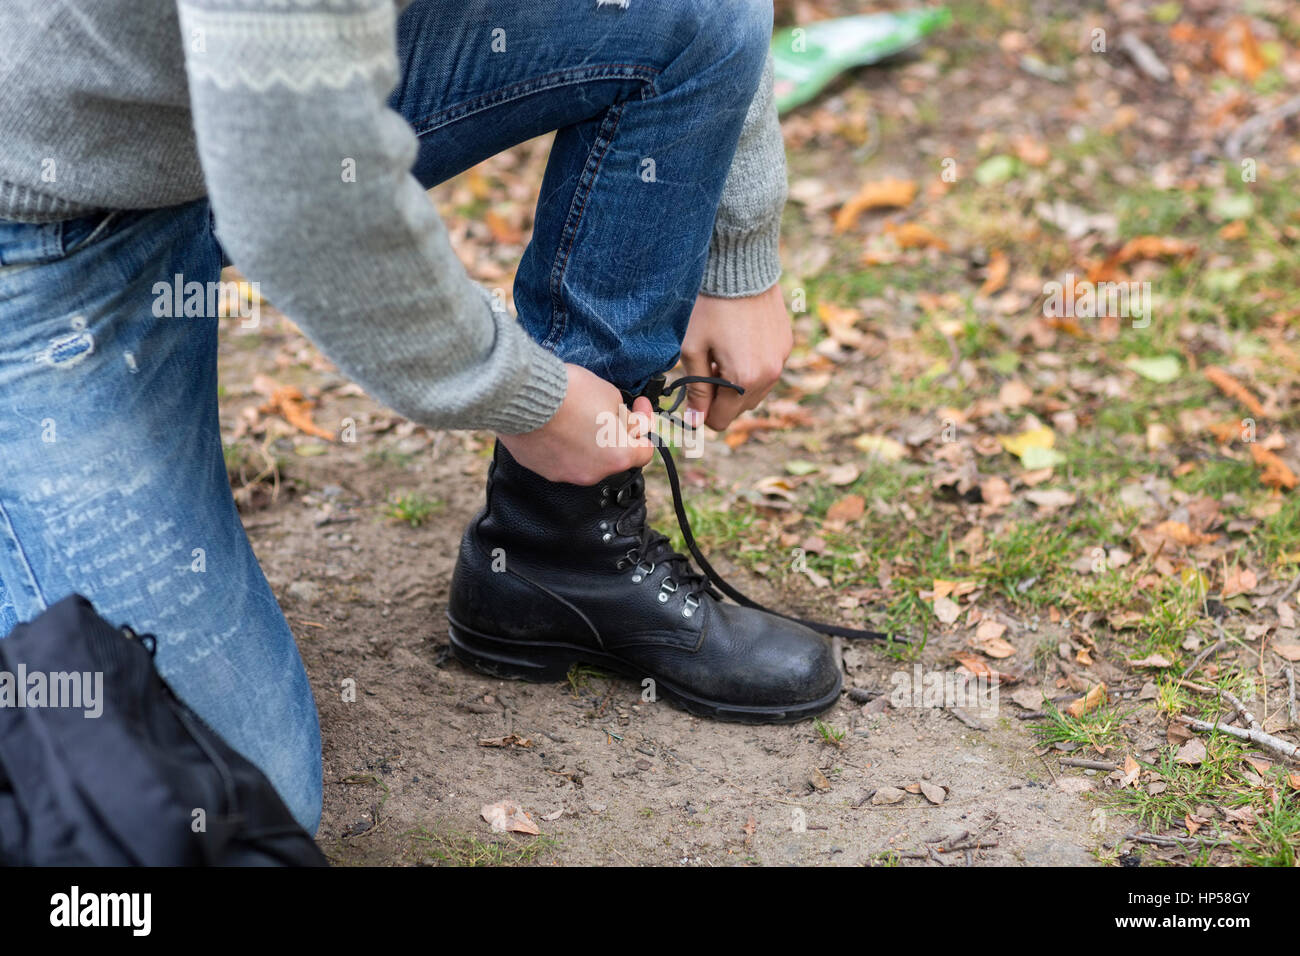 Male Hiker Tying Shoelace In Countryside - Stock Image